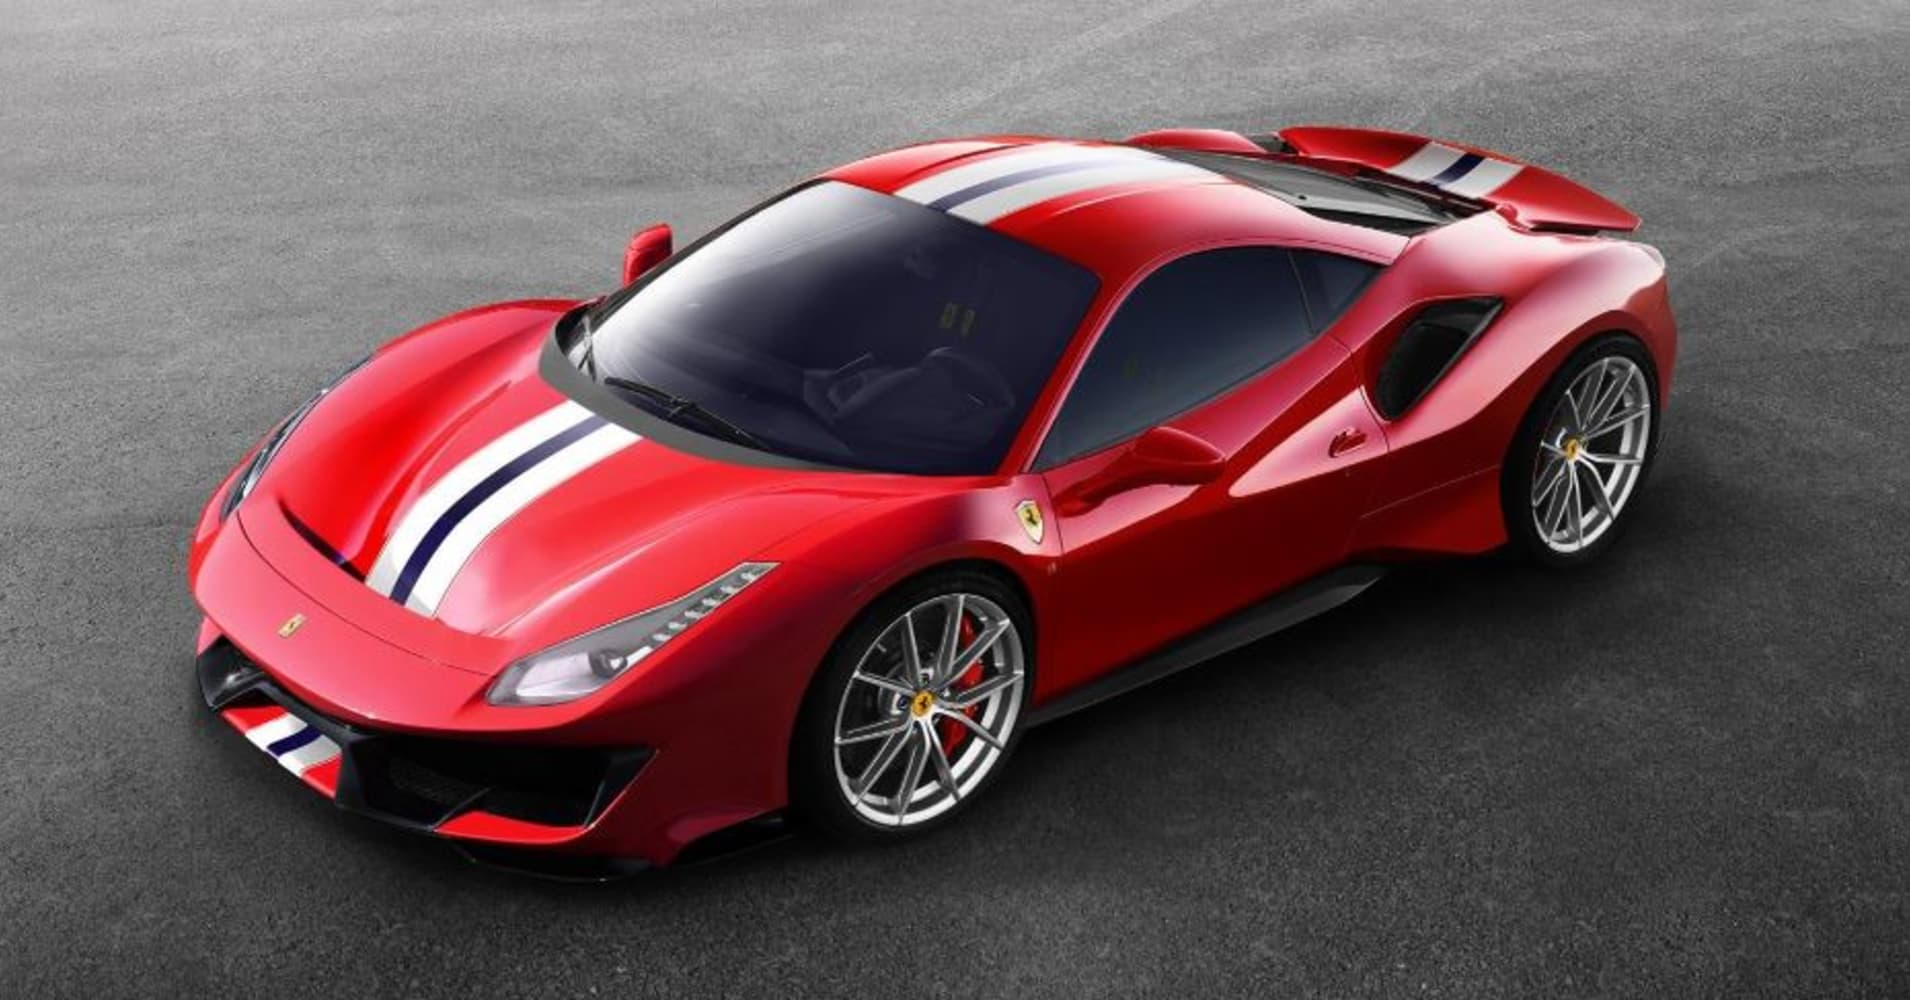 Here are the hot new cars being unveiled at the Geneva Motor Show